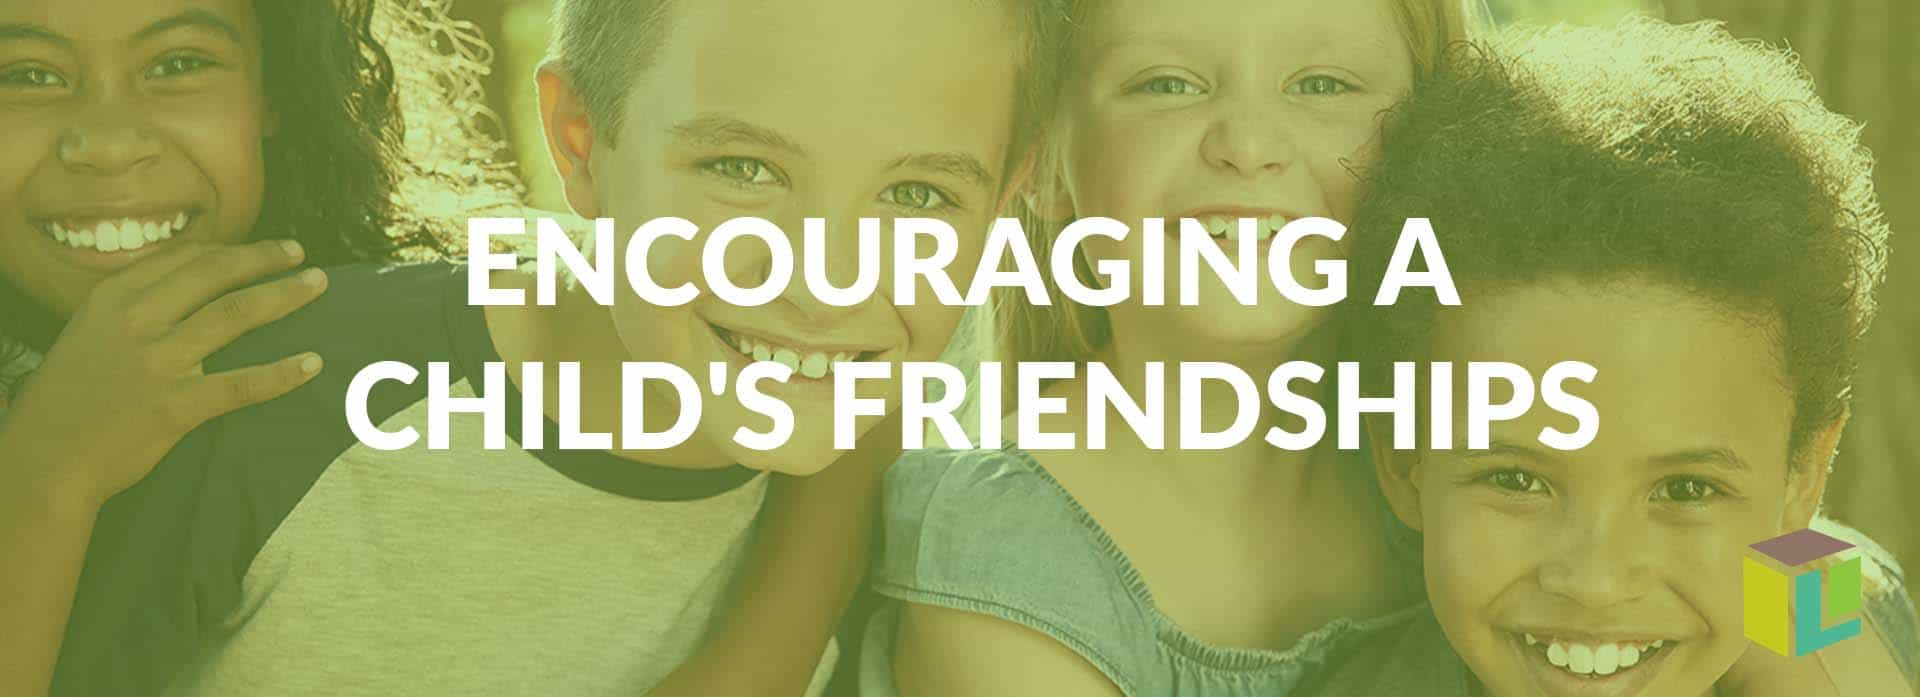 Encouraging A Child's Friendships